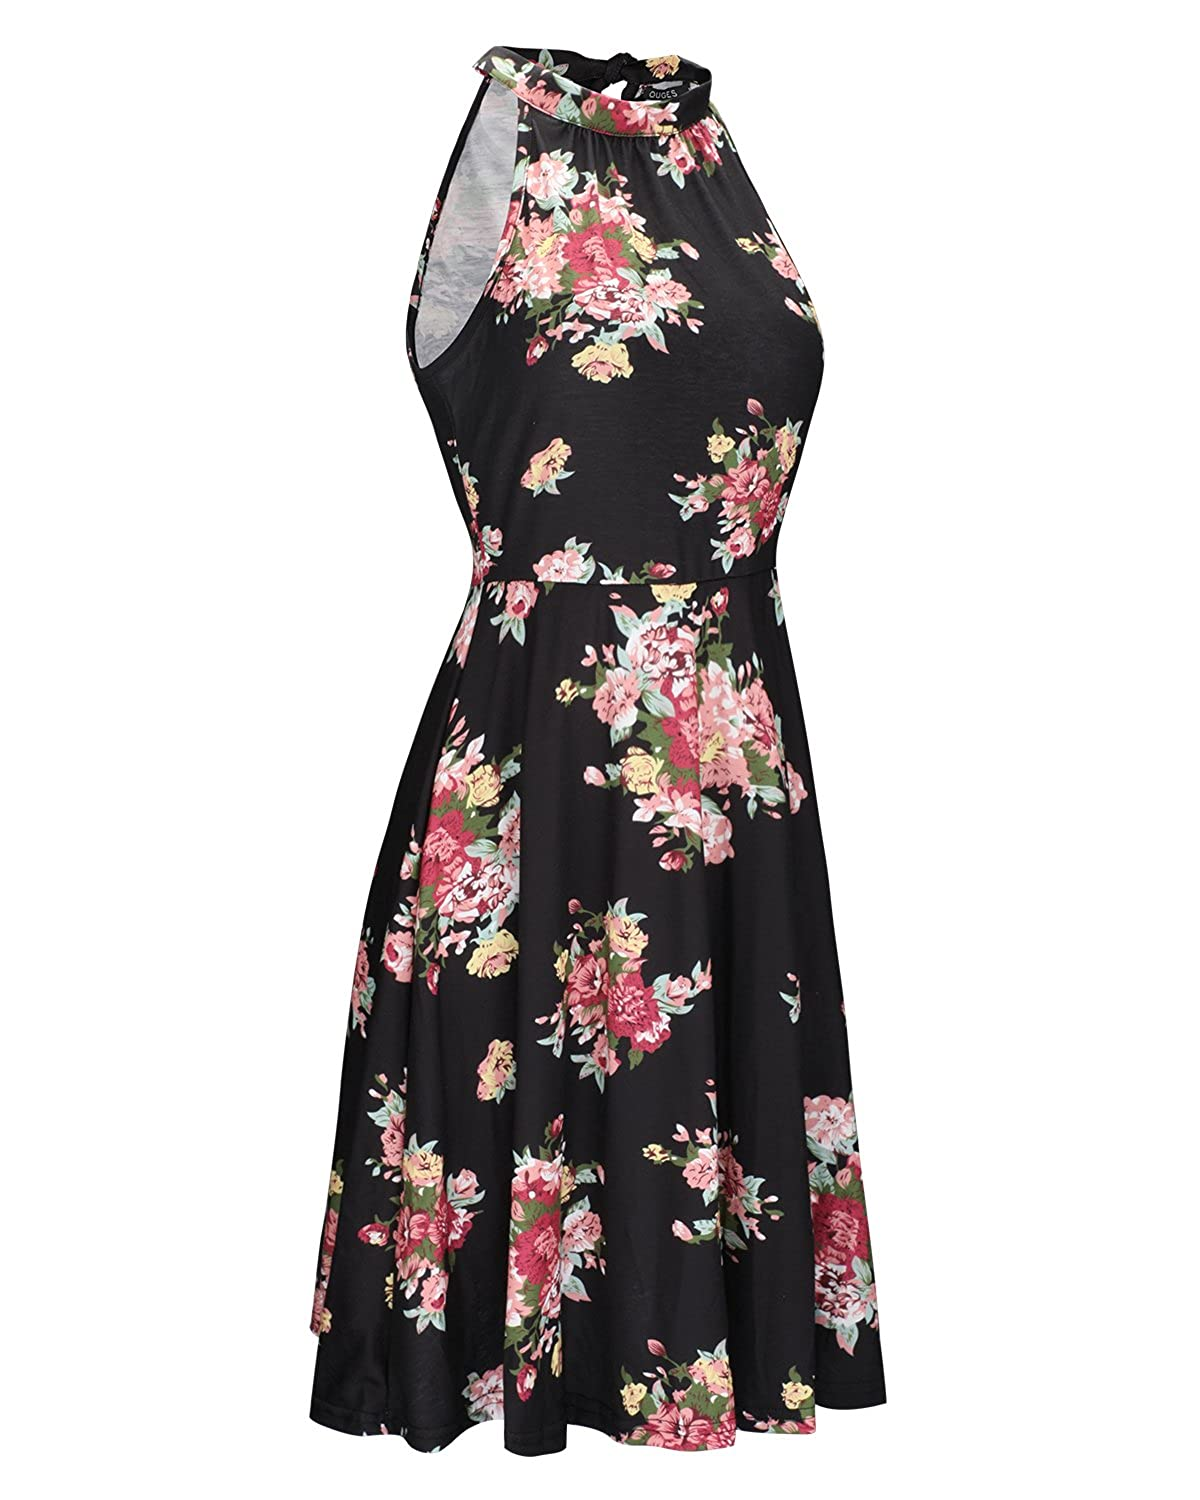 ab523146093 OUGES Women s Halter Neck Floral Summer Casual Sundress at Amazon Women s  Clothing store